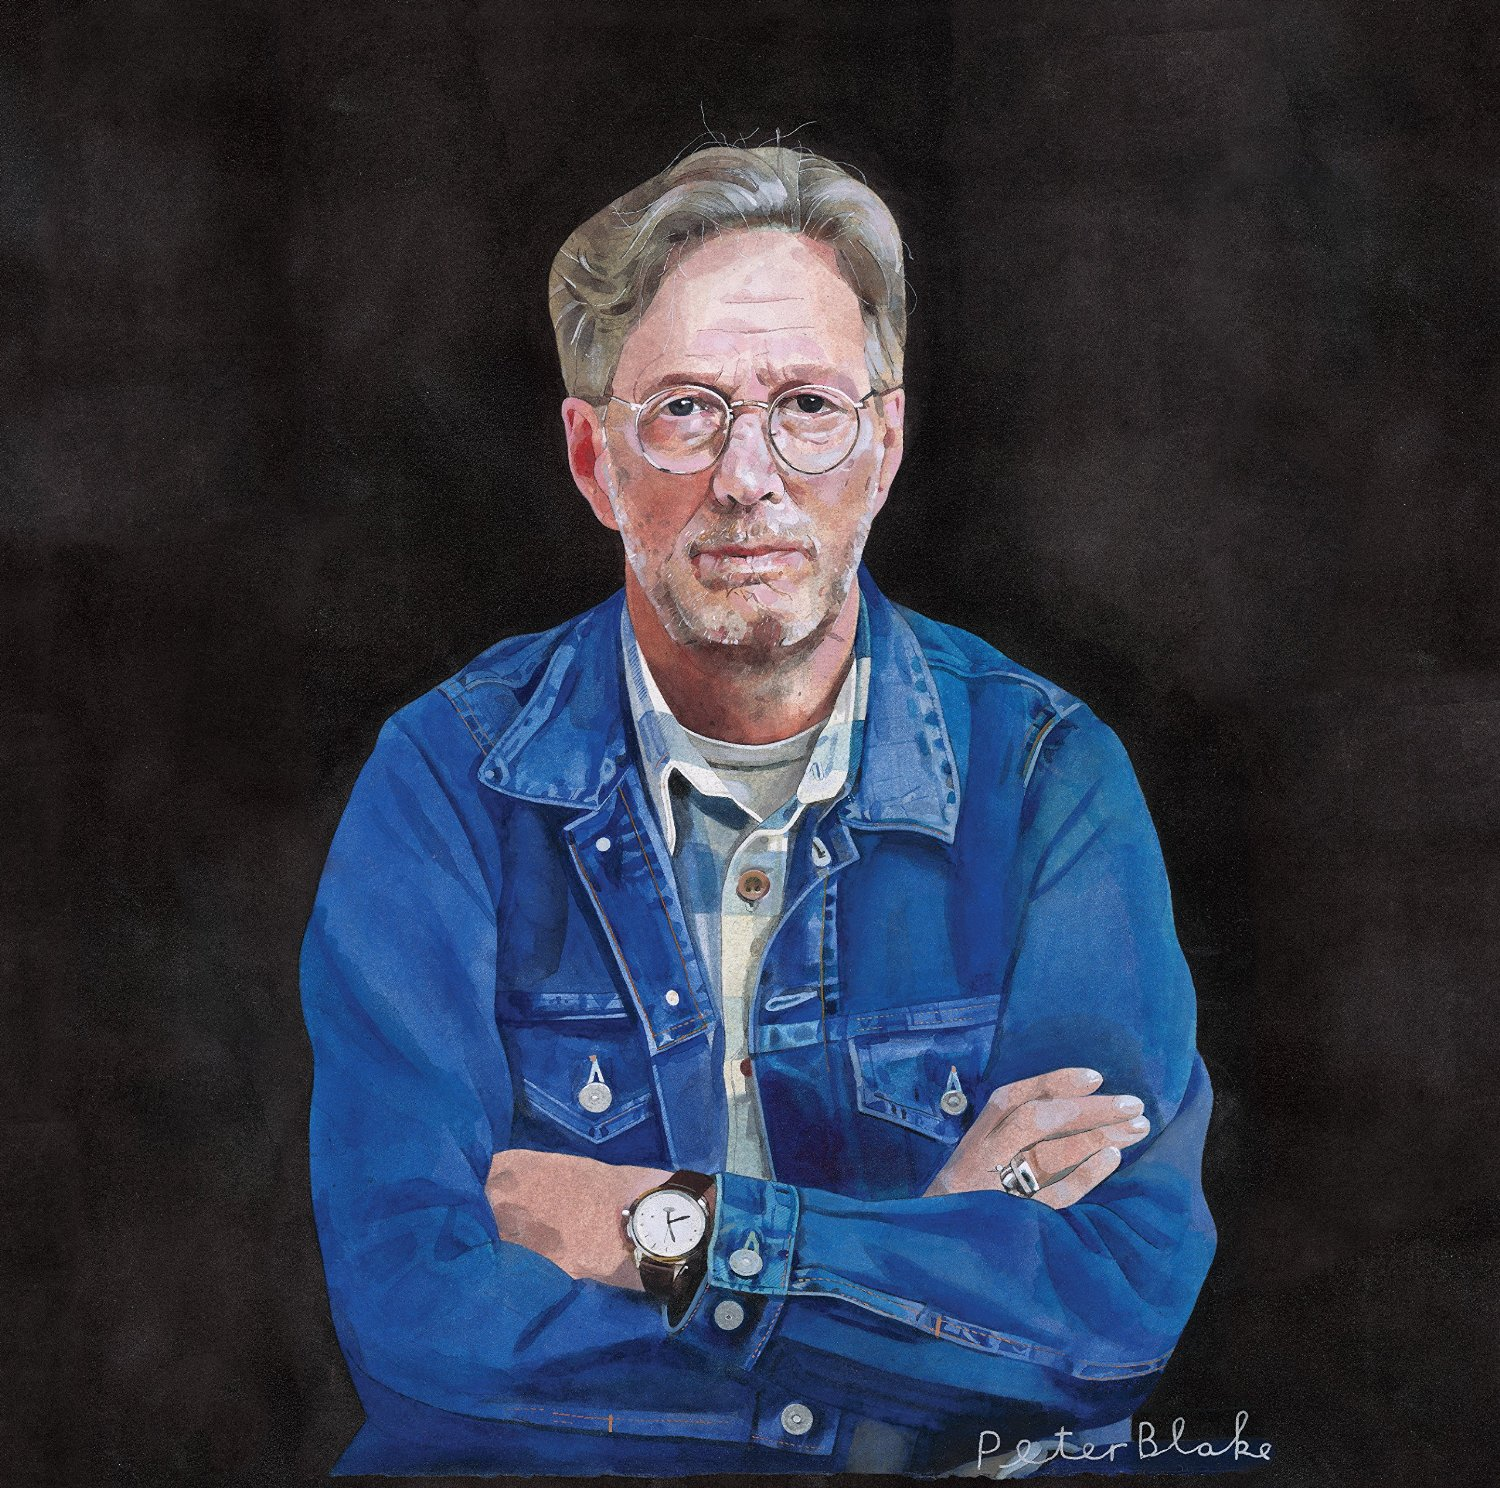 Eric Clapton's newest album is due out May 20.